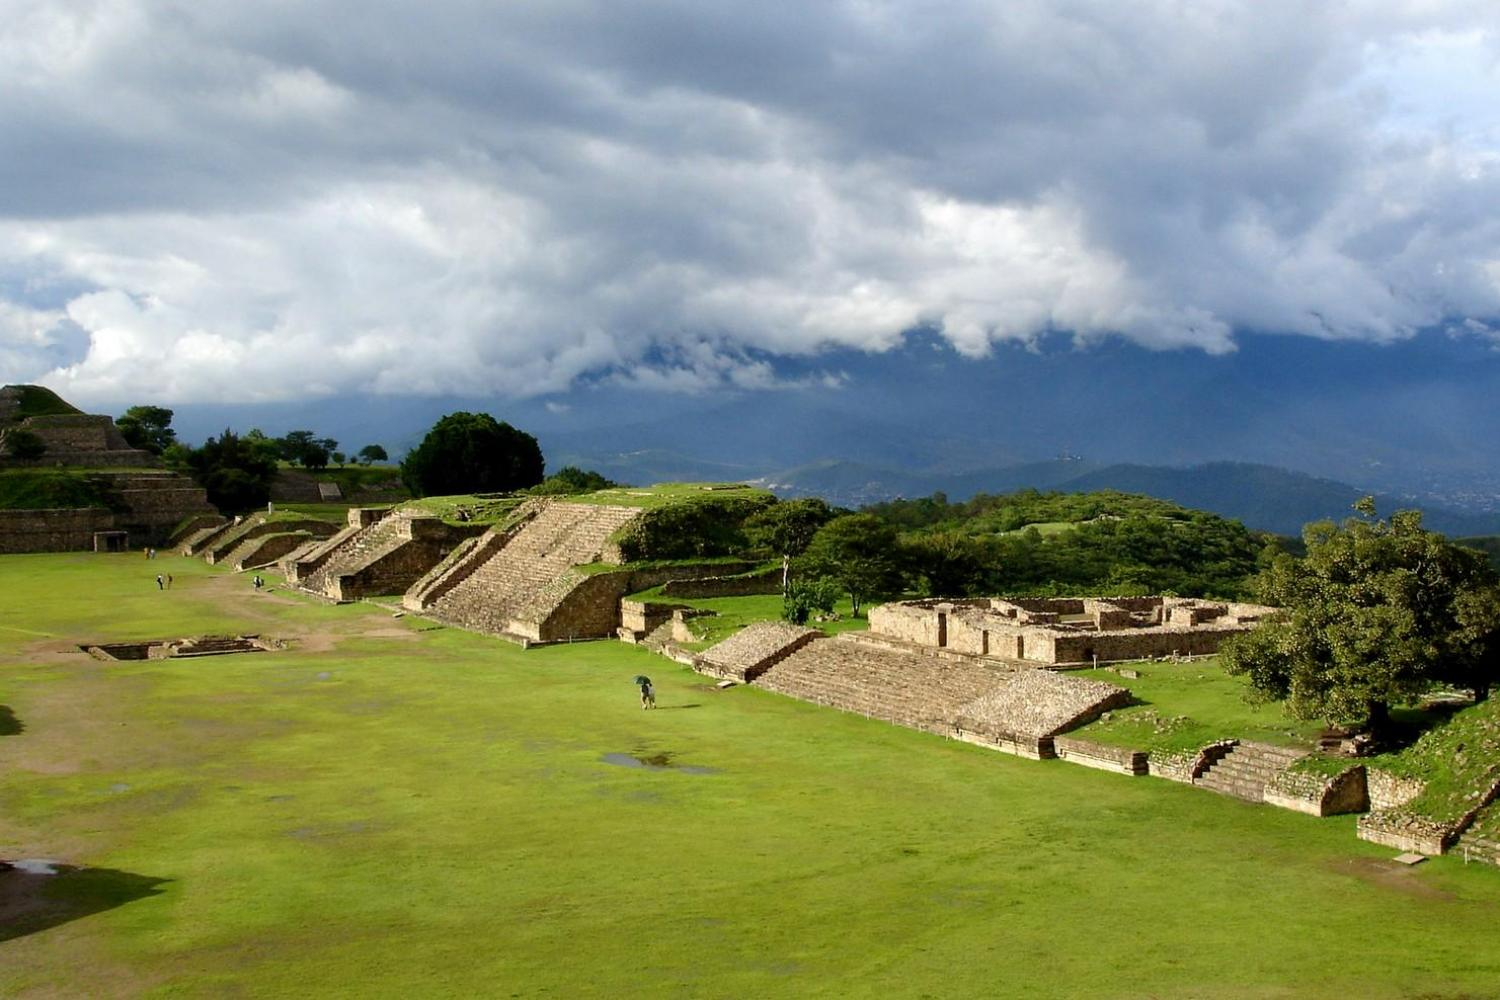 Visit Monte Alban ruins, standing tall above the surrounding Oaxaca Valley